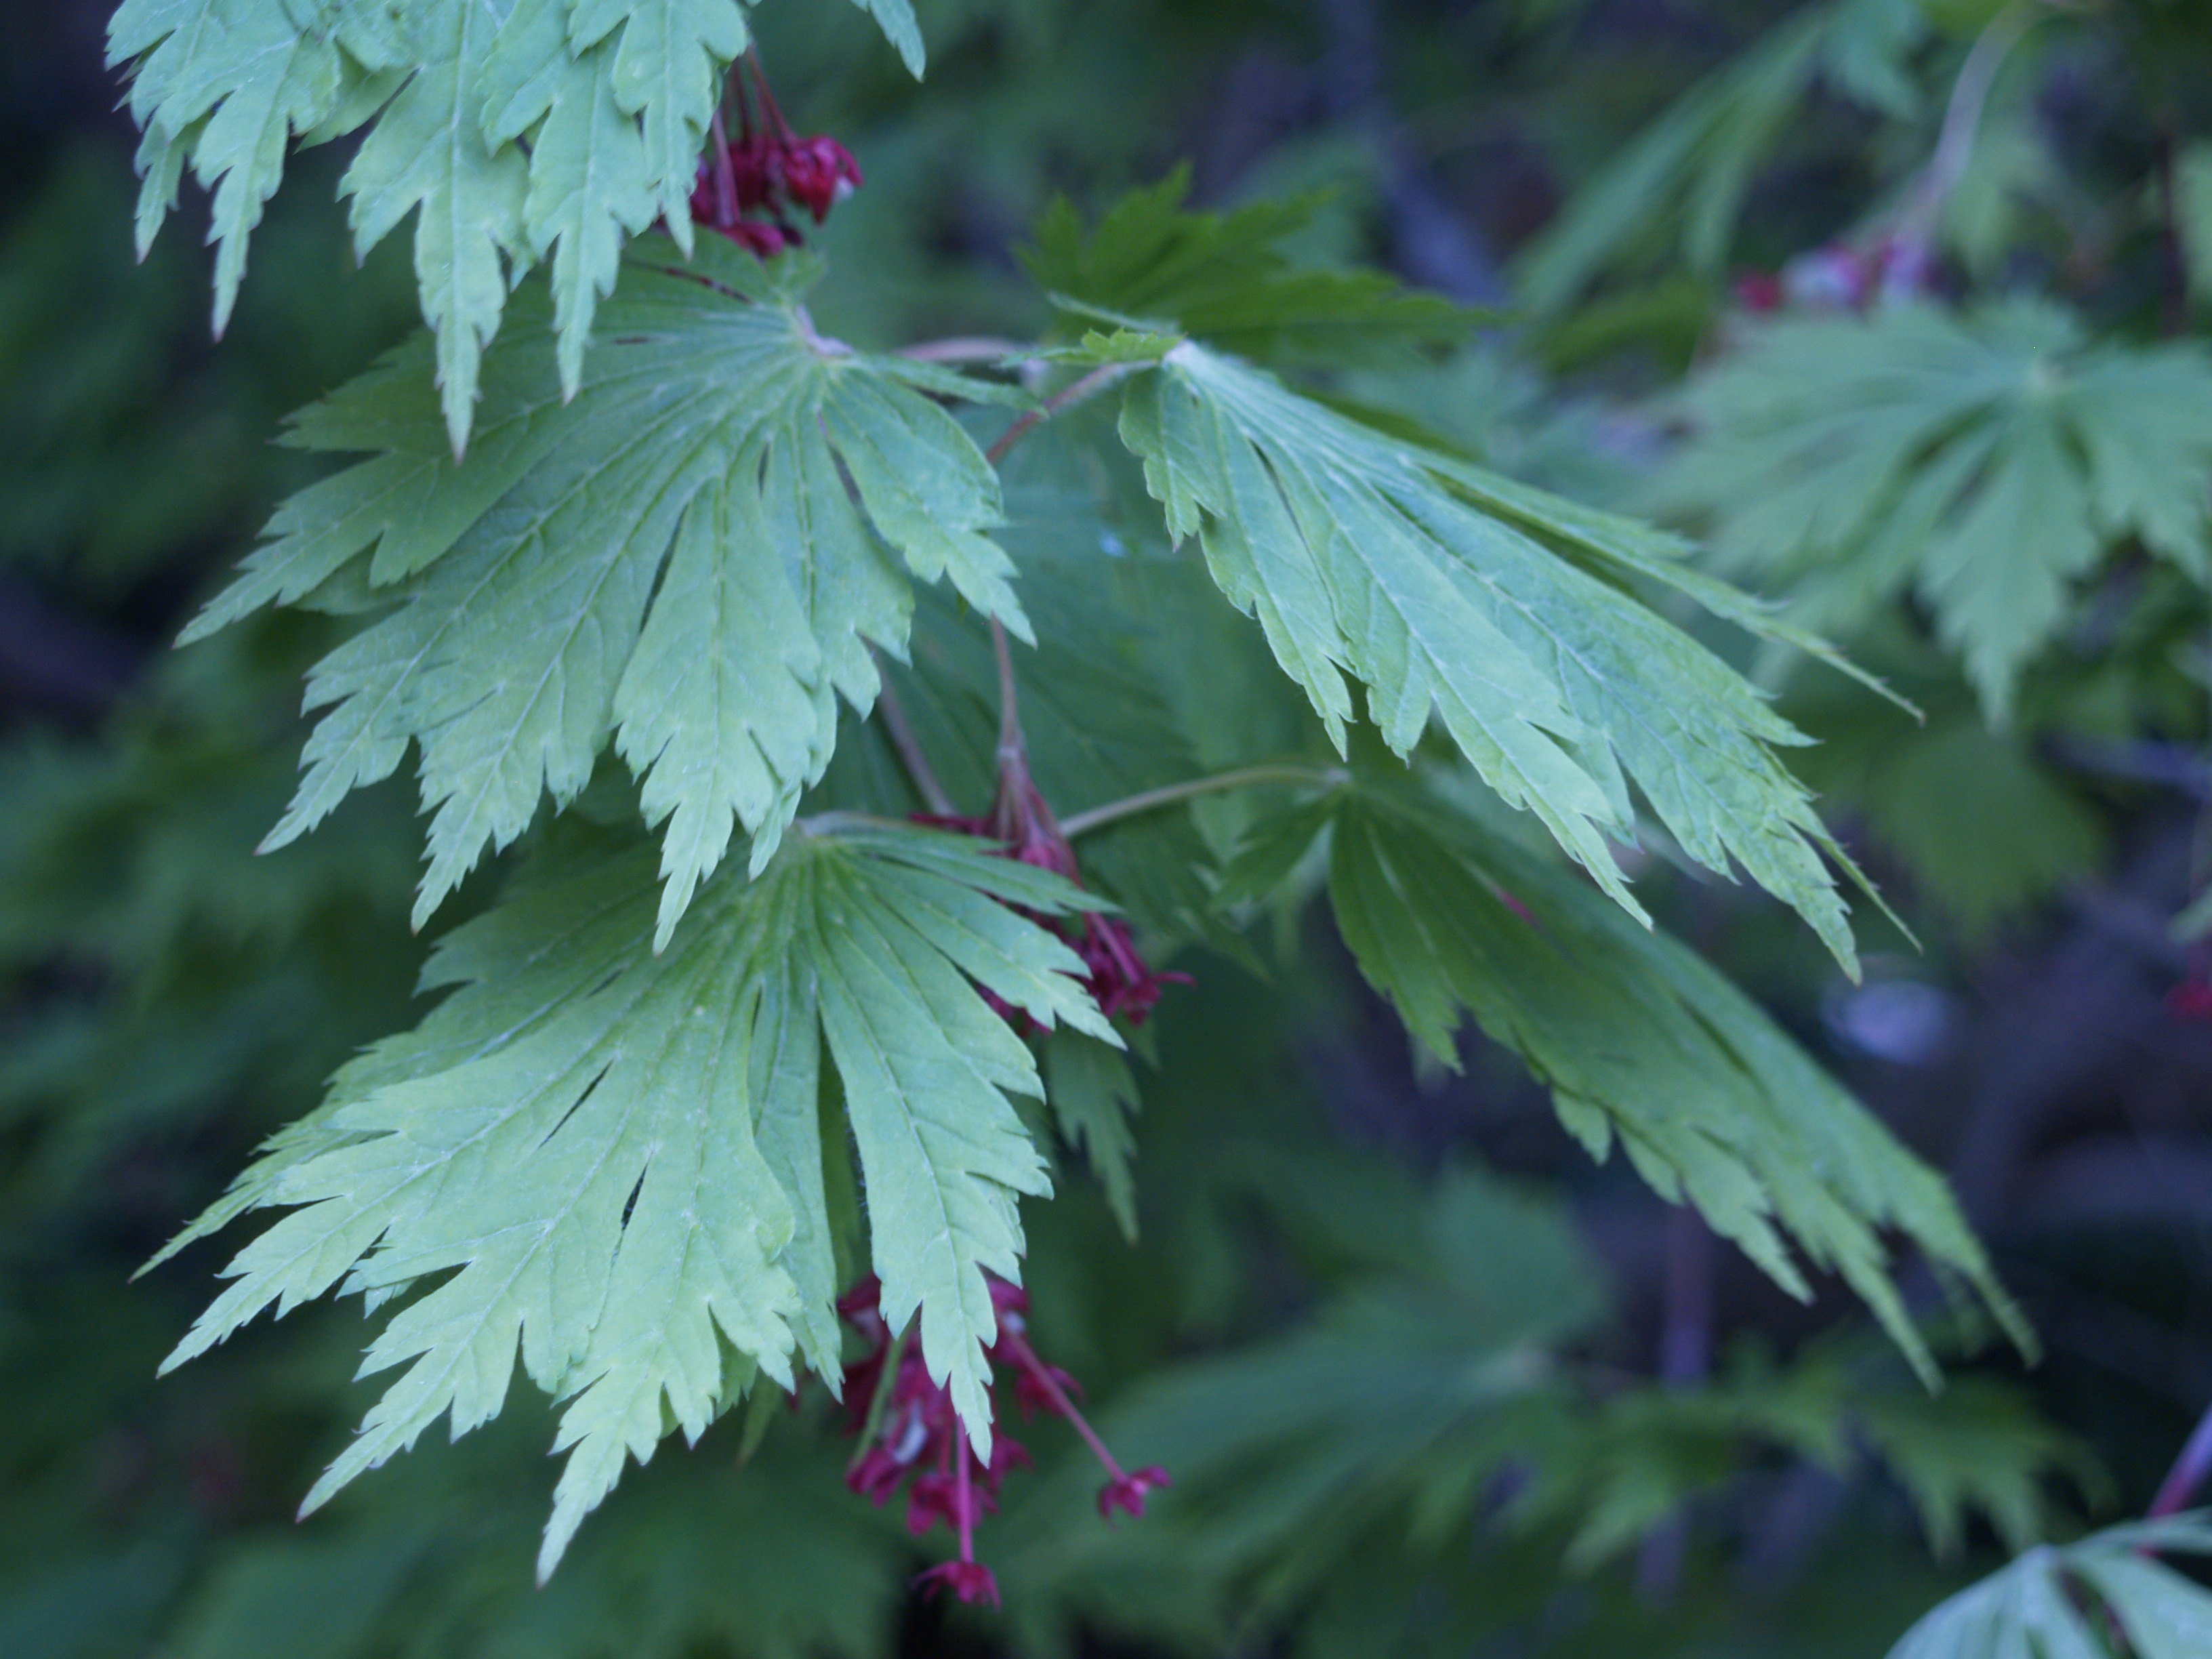 How to care for a fern leaf japanese maple - Perhaps You Have Found A Japanese